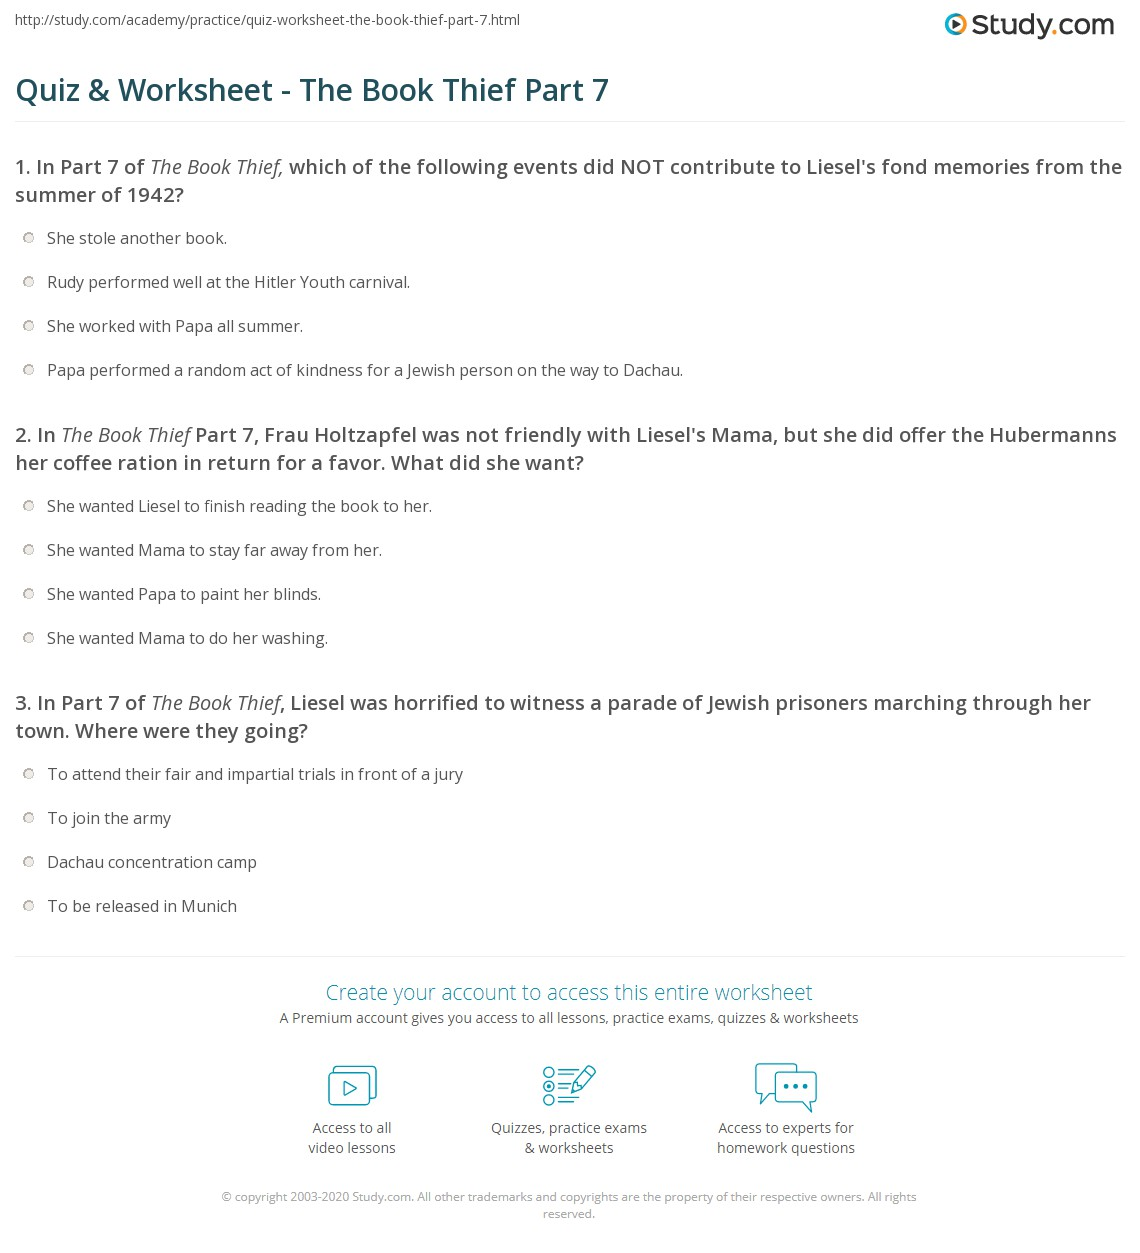 quiz worksheet the book thief part com print the book thief part 7 summary worksheet